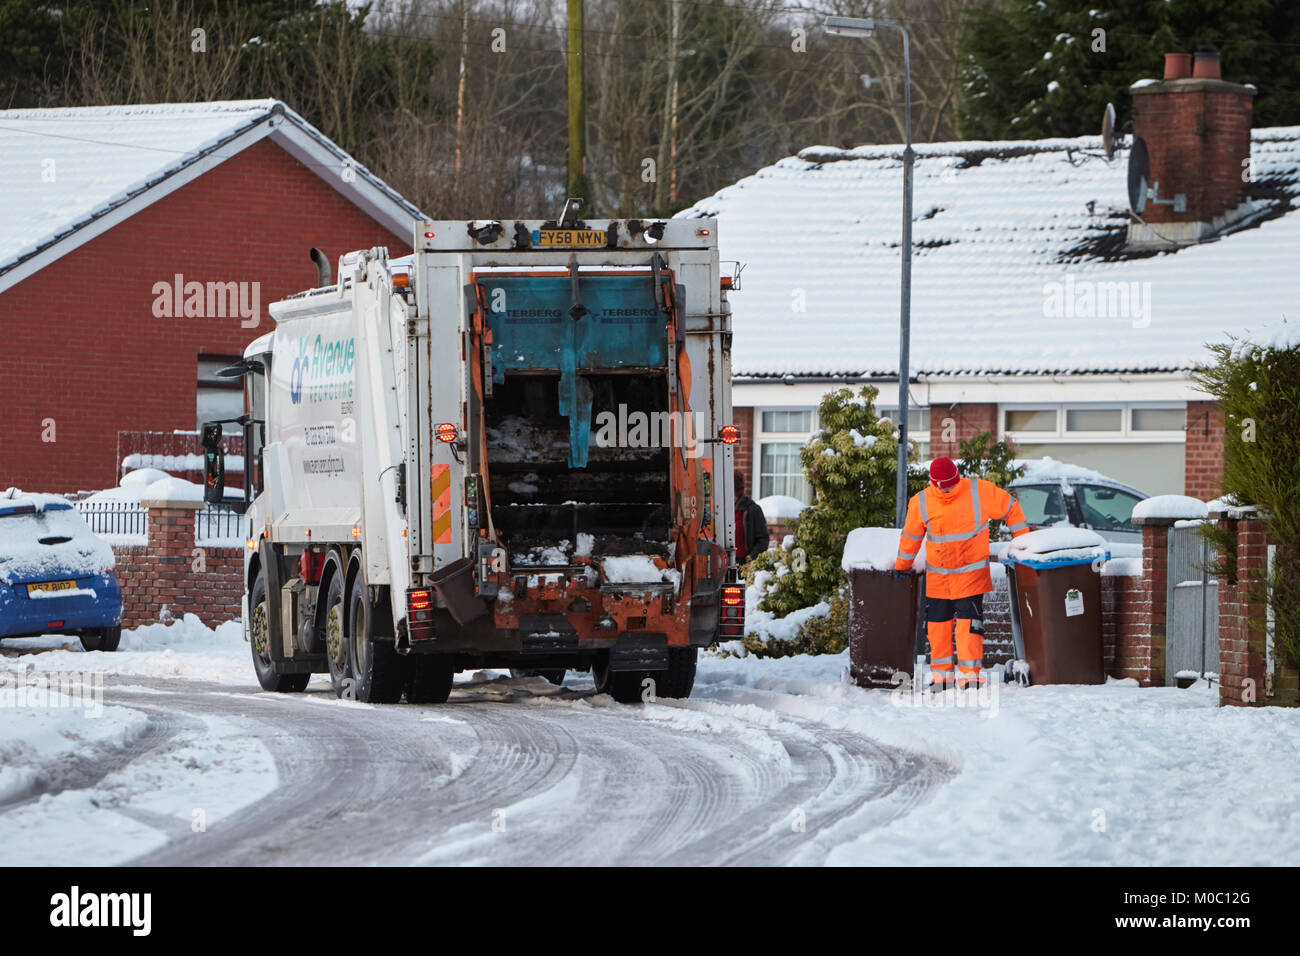 worker collecting bins with refuse recycling collection truck driving along street covered in snow in newtownabbey - Stock Image